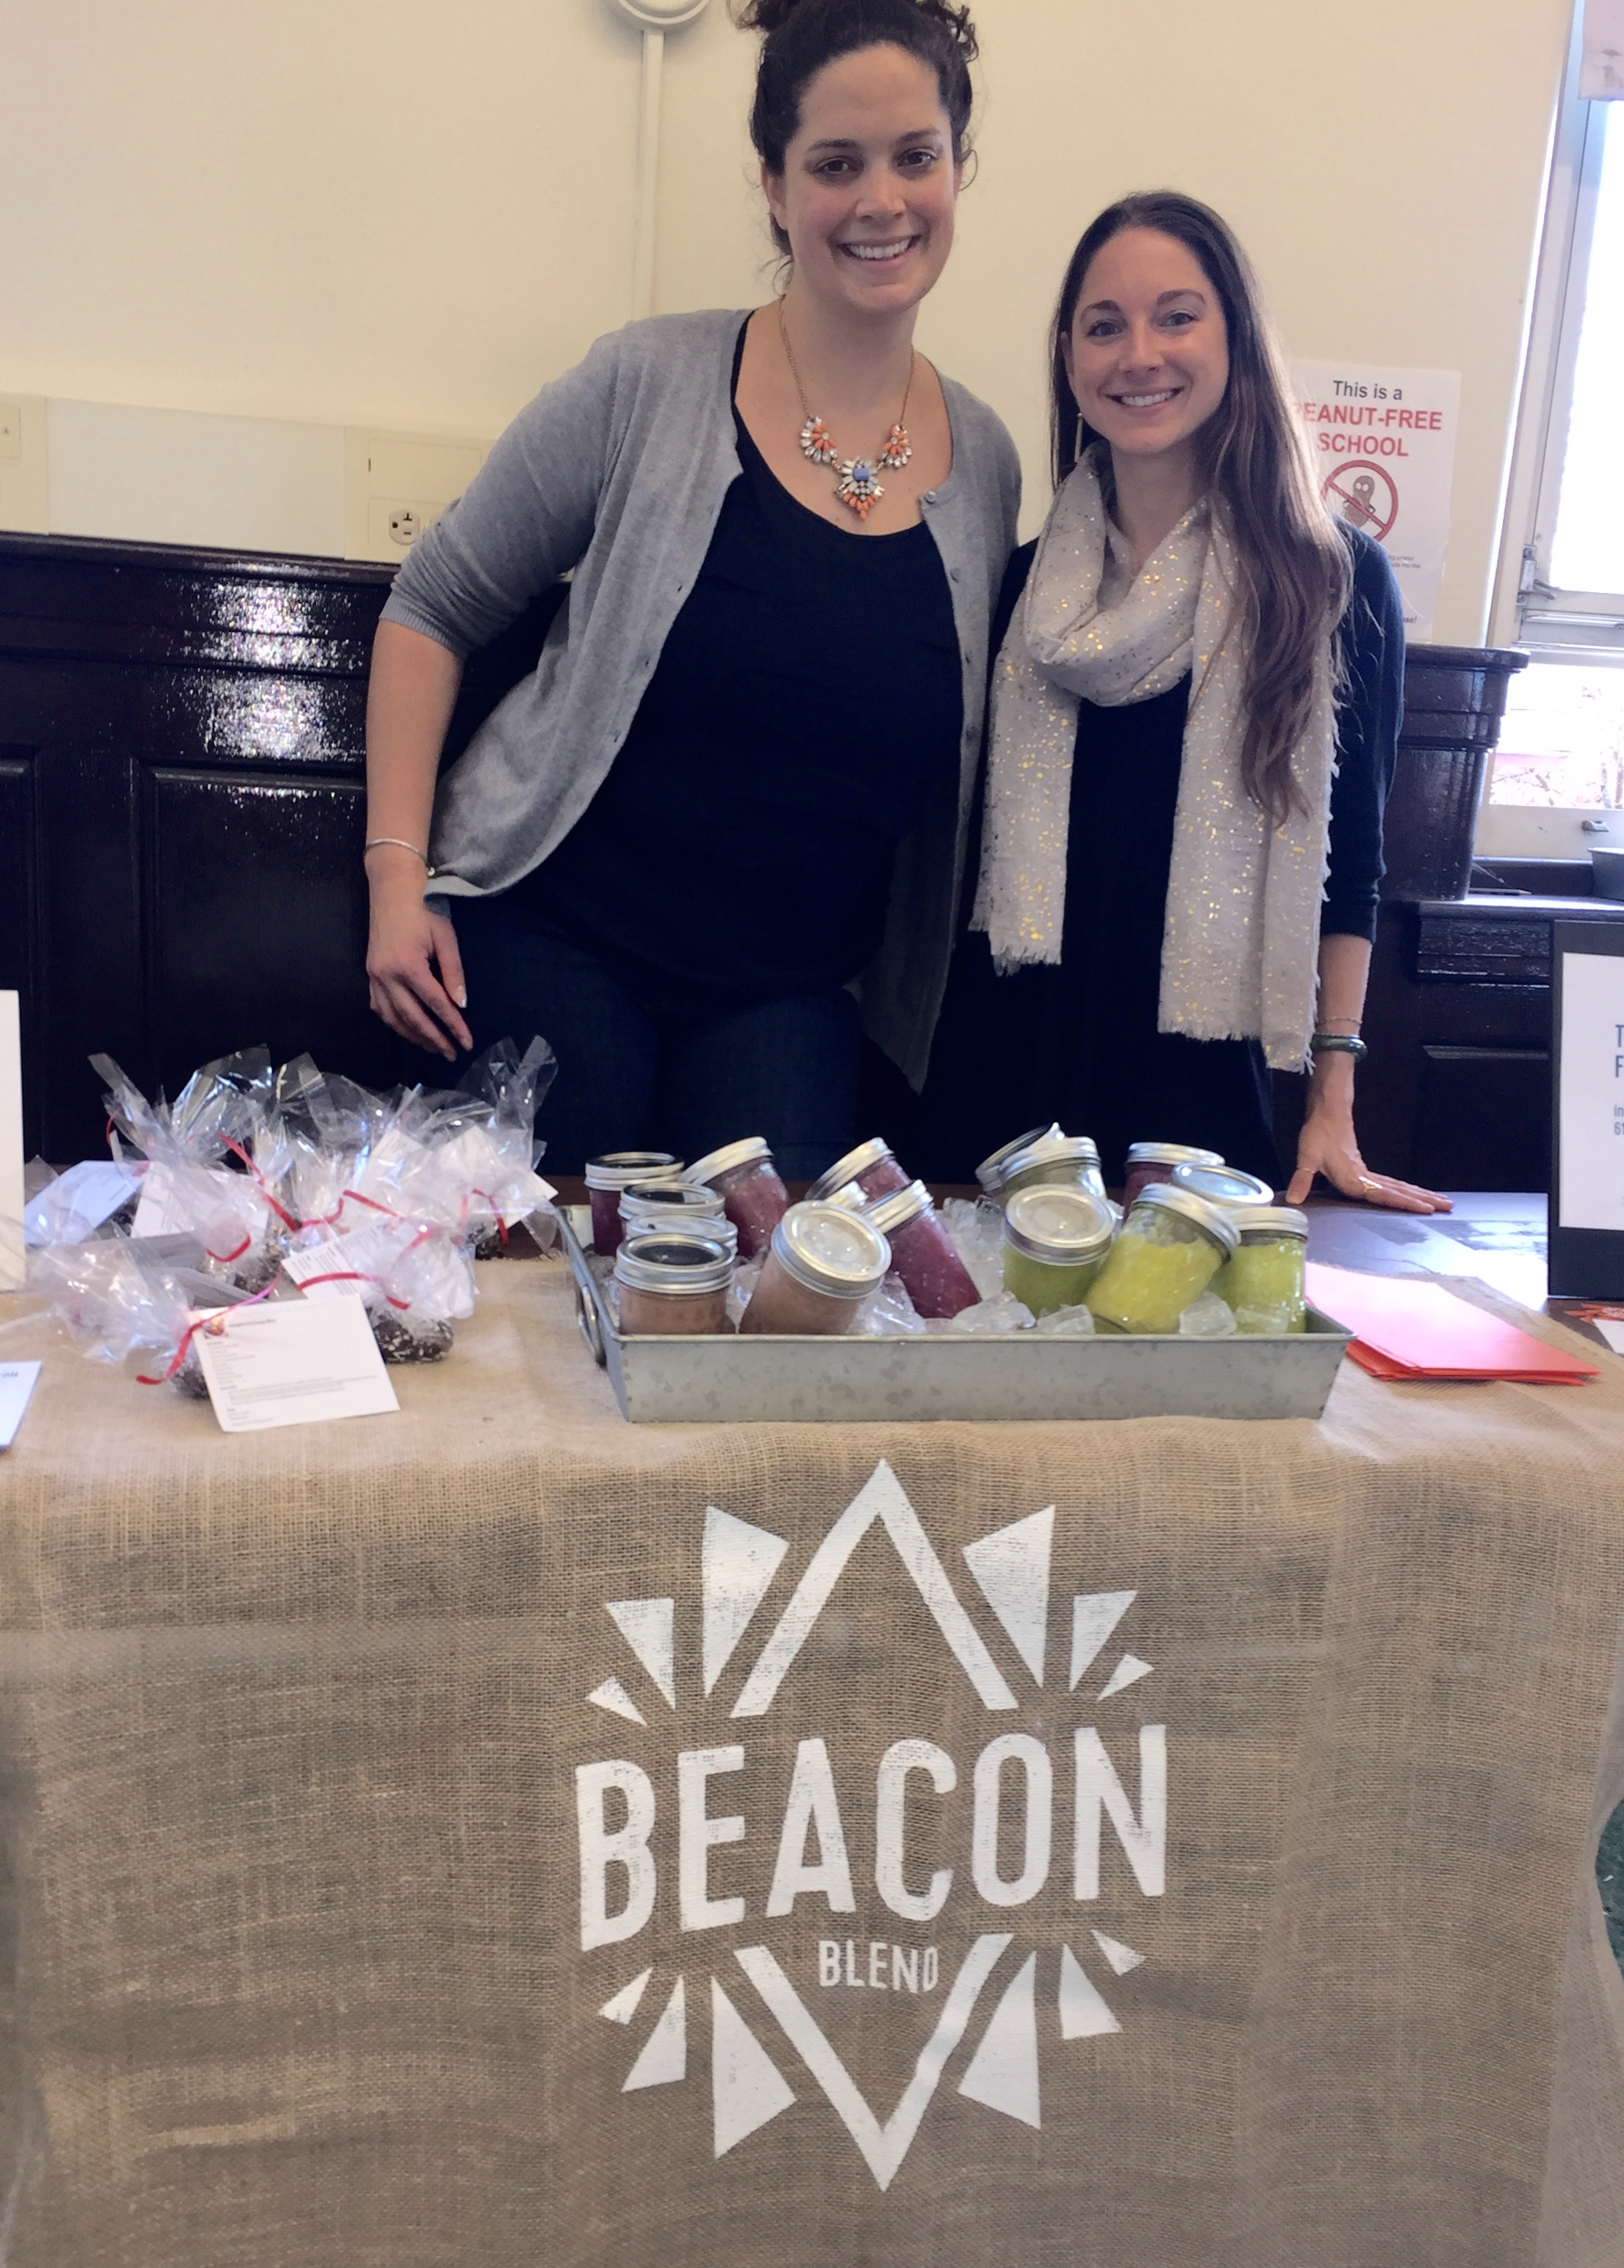 Mary and I with Beacon Blend's beautiful display in our teachers' lounge.